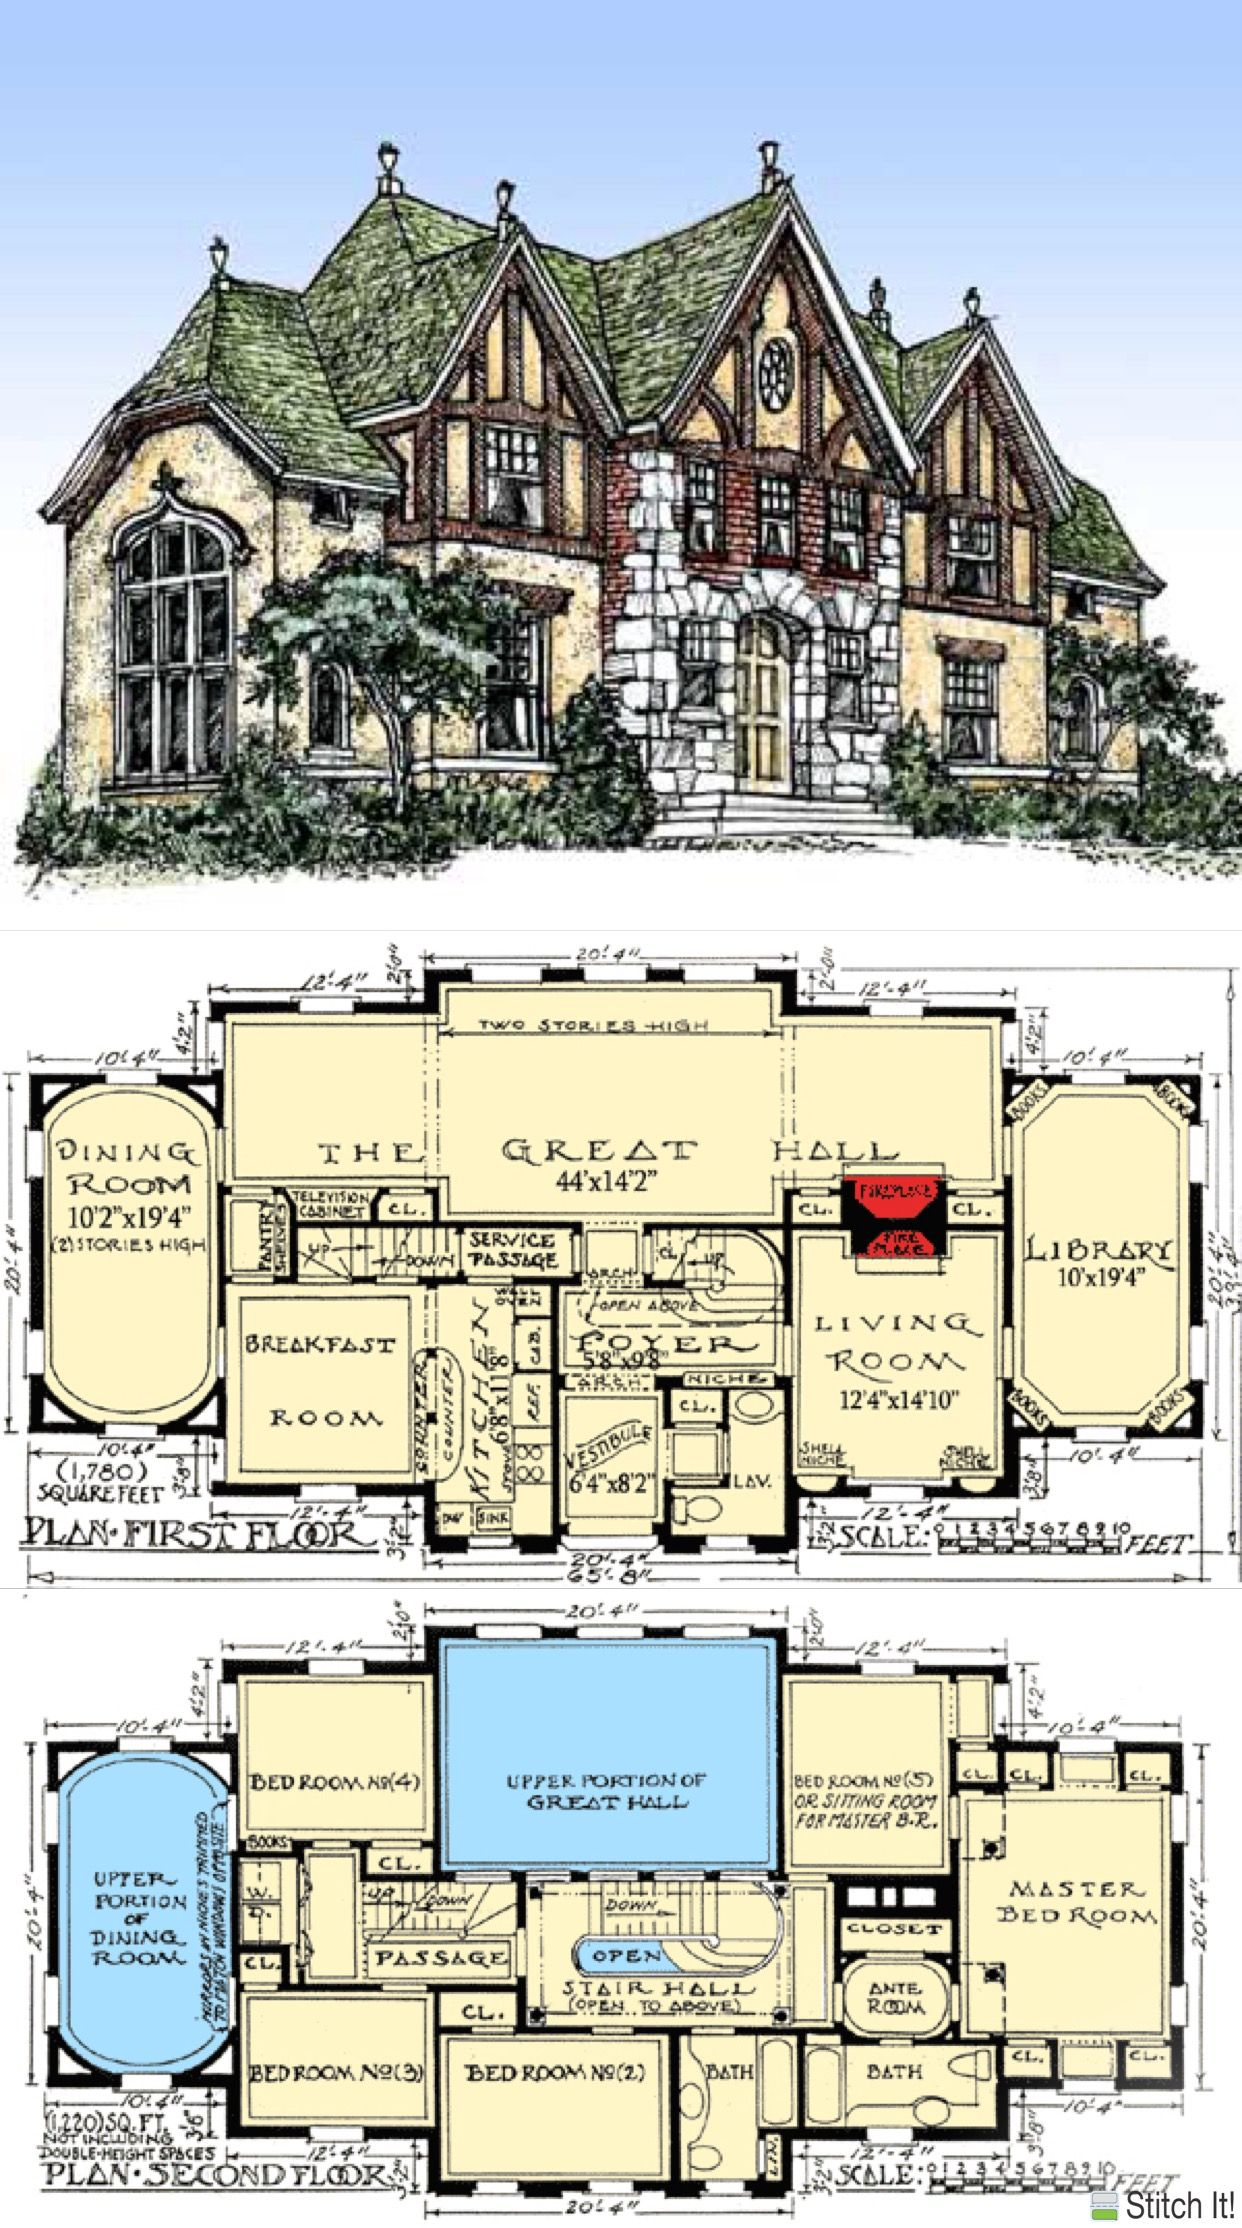 Pin By Inzaghi Posuma Al Kahfi On David John Carnivale Sims House Plans Victorian House Plans House Blueprints